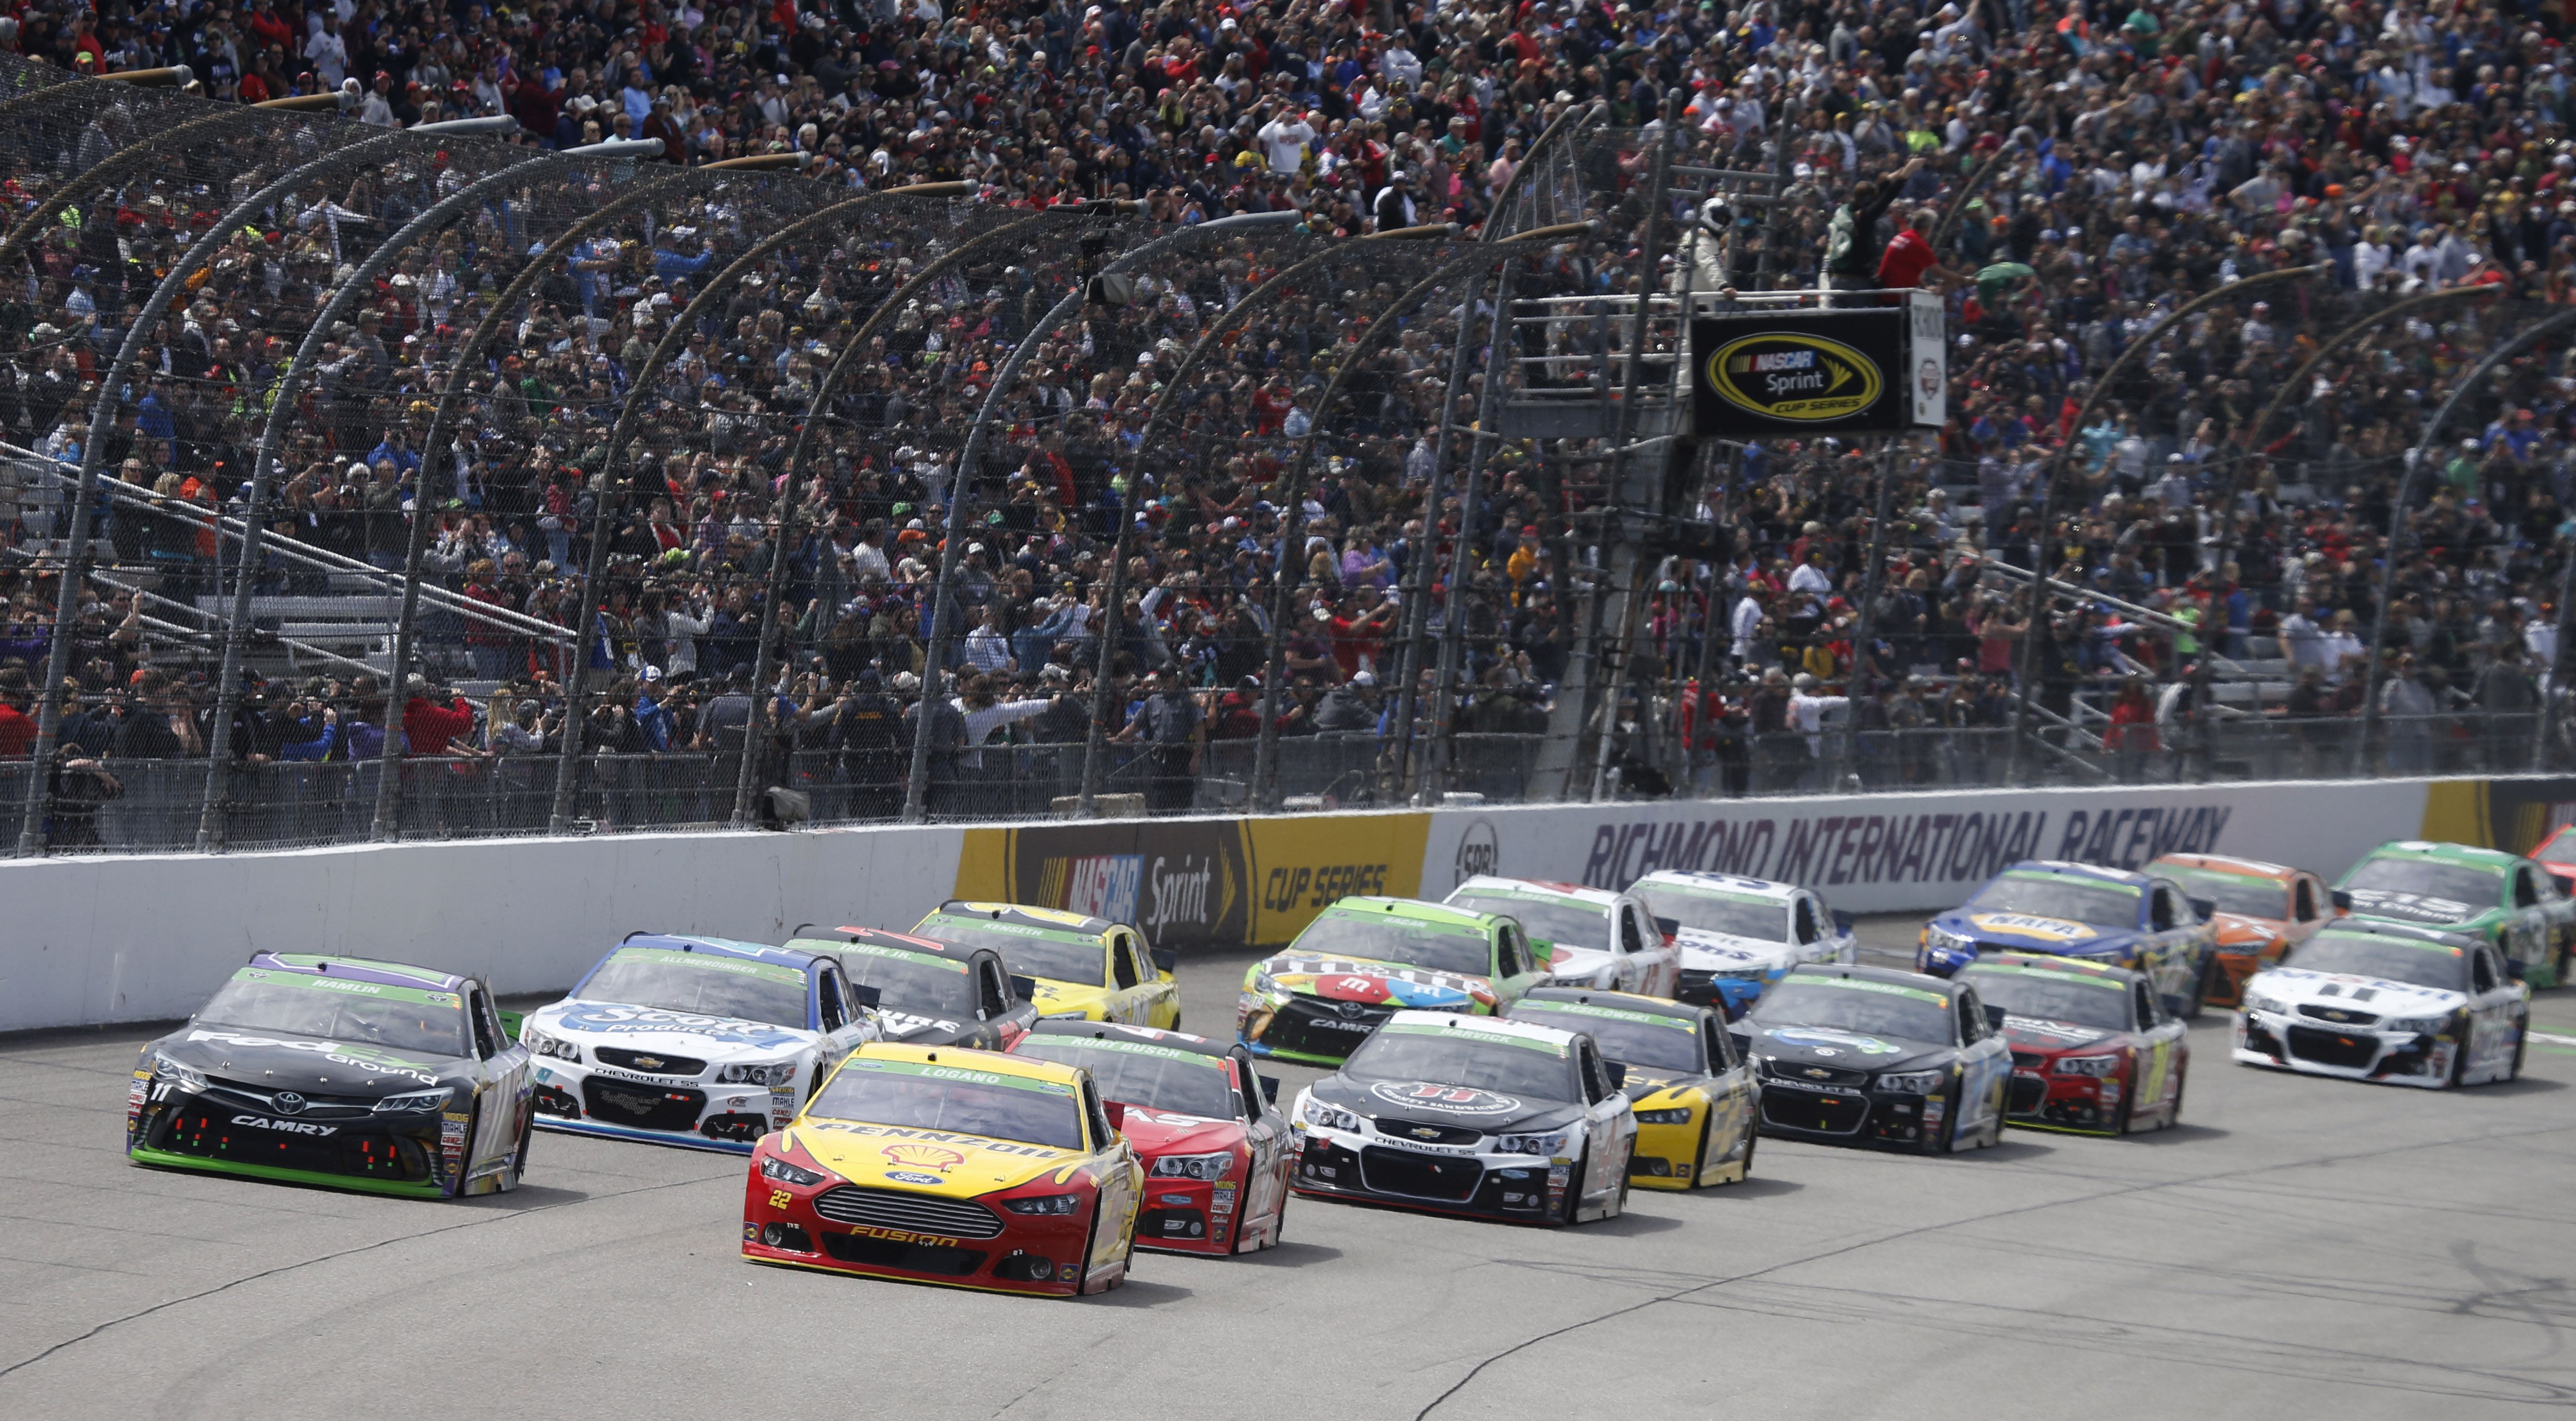 Joey Logano (22) and Denny Hamlin (11) lead the field at he start of the NASCAR Sprint Cup auto race at Richmond International Raceway in Richmond, Va., Sunday, April 26, 2015. (AP Photo/Steve Helber)